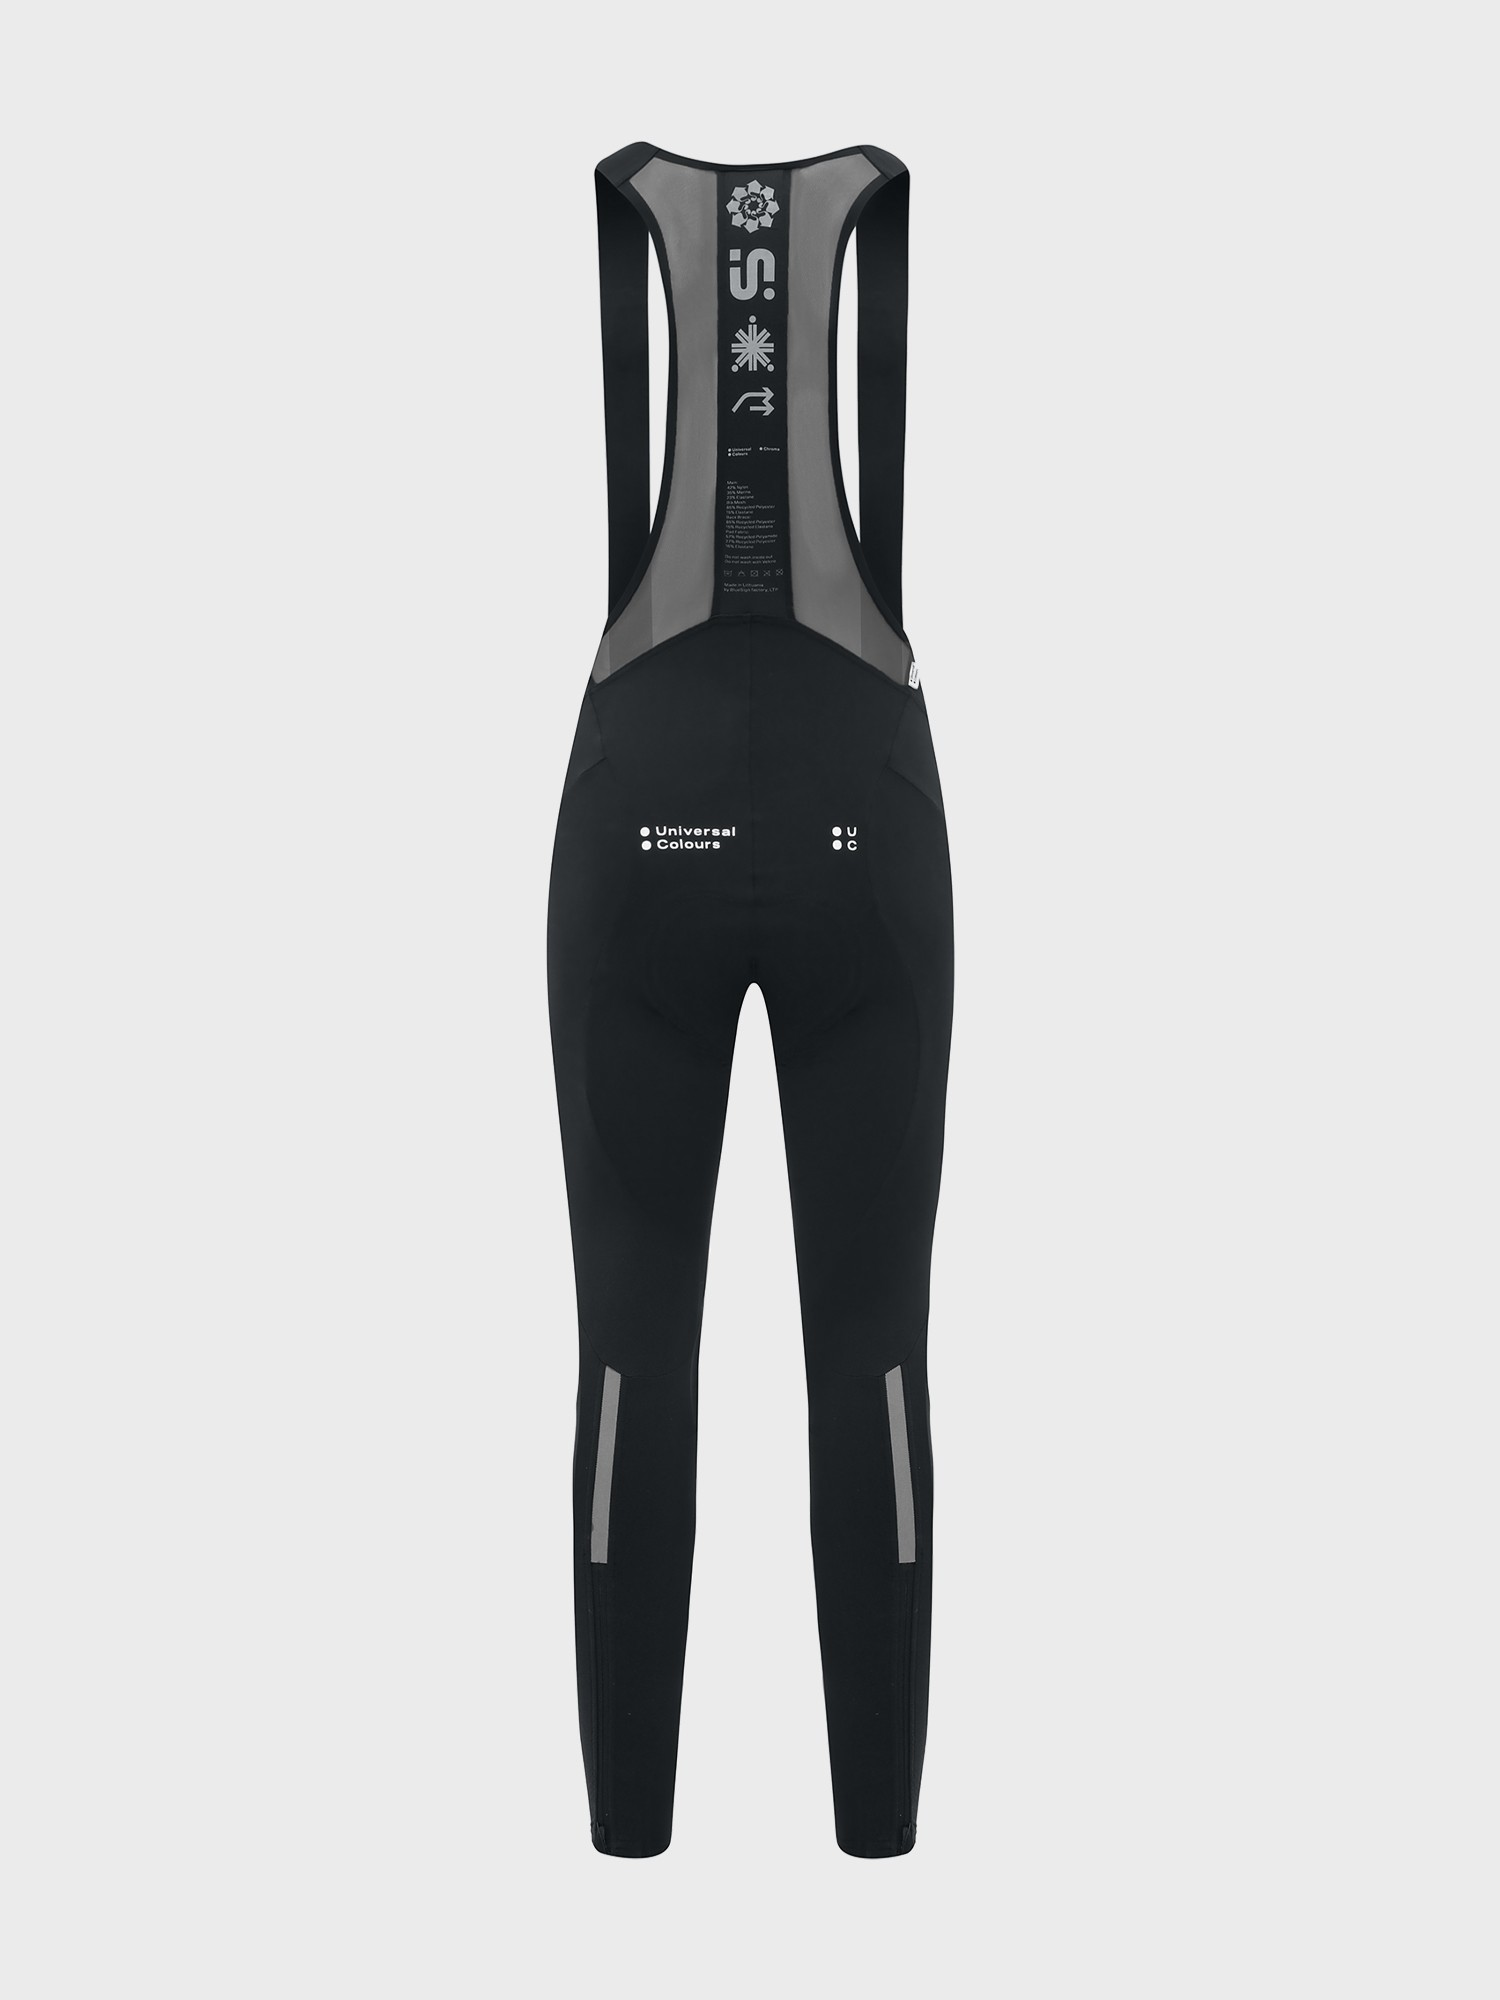 Chroma Men's Thermal Bib Tight